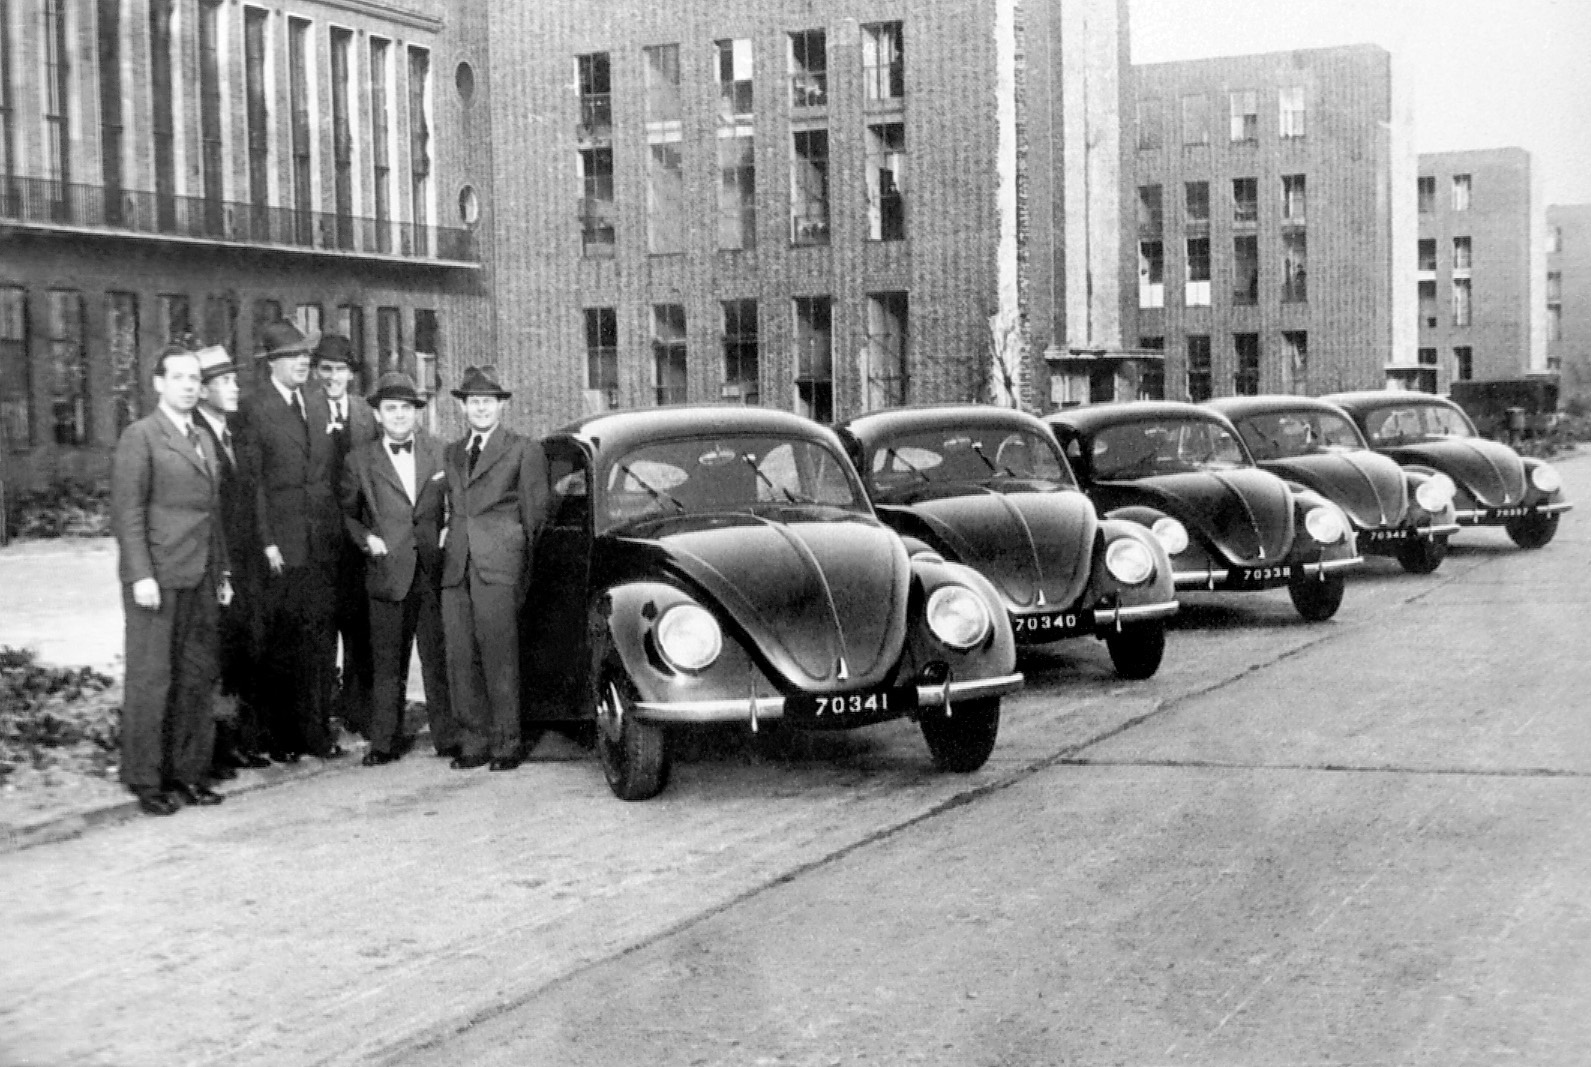 British take over Volkswagen 1945 - First exports